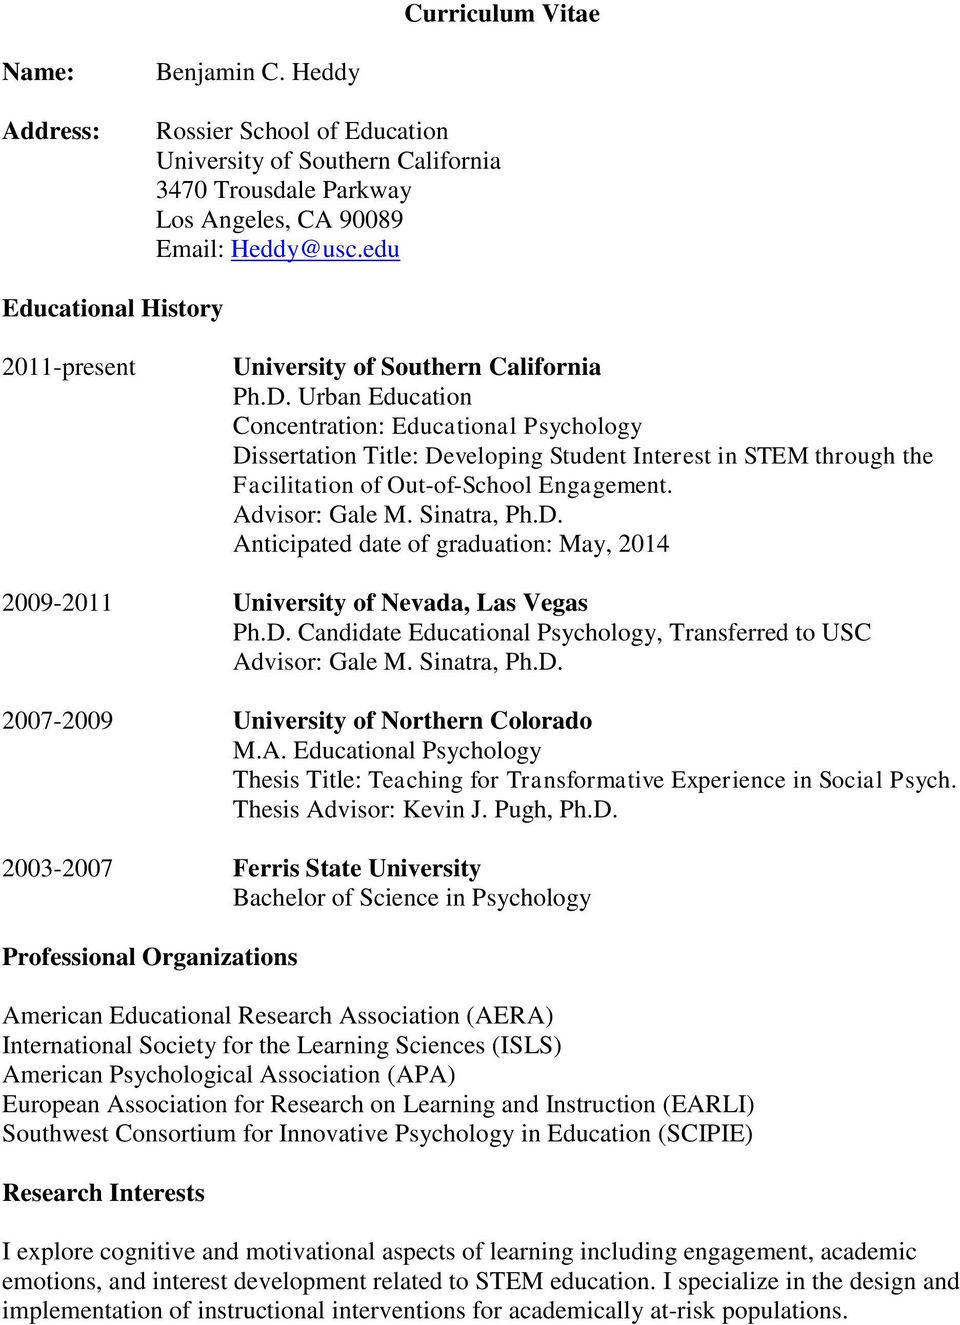 10 Great Suggestions for Educational Psychology Dissertation Topics